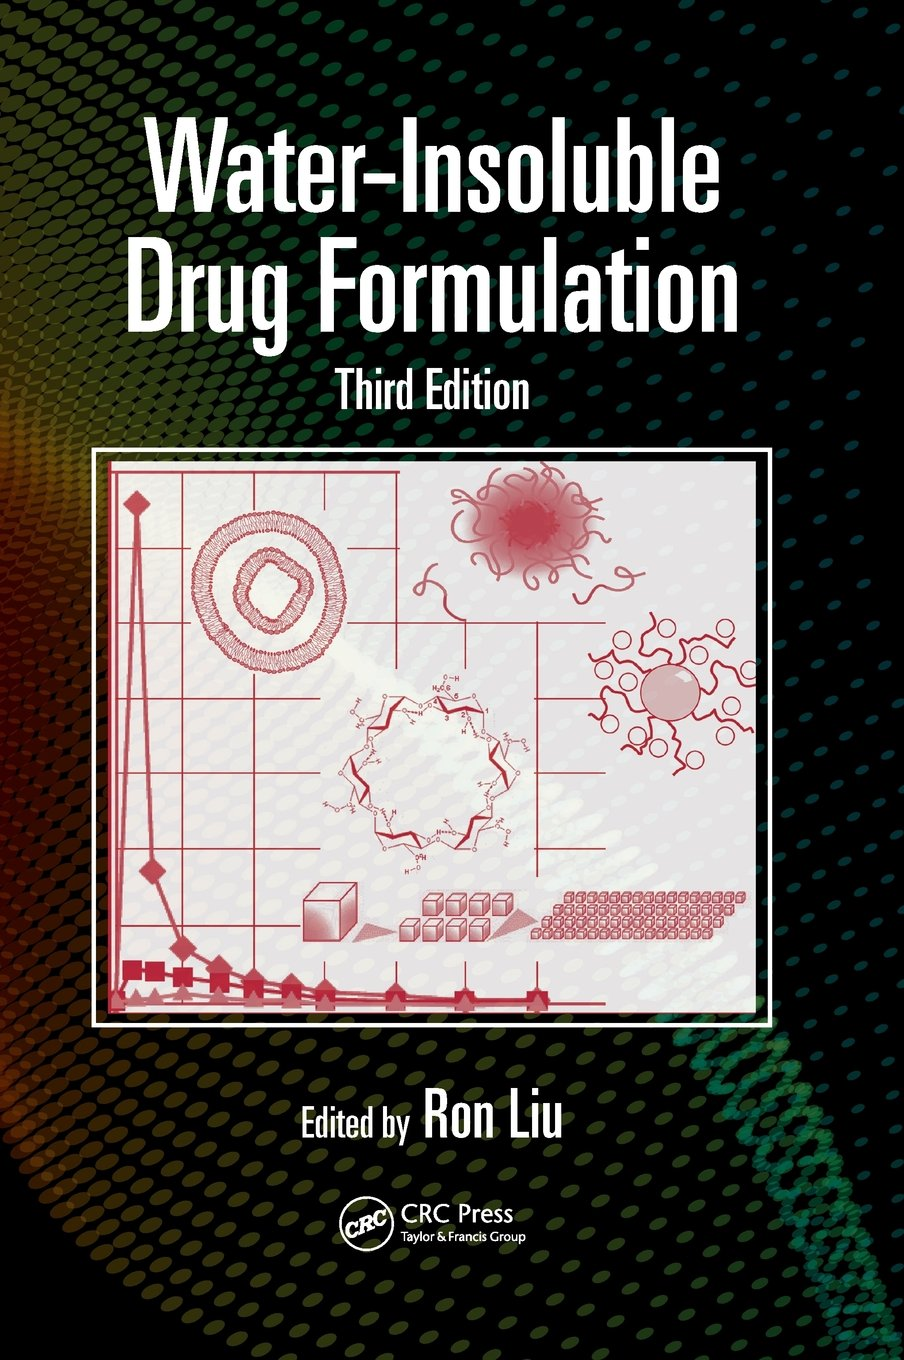 Water-Insoluble Drug Formulation, Third Edition